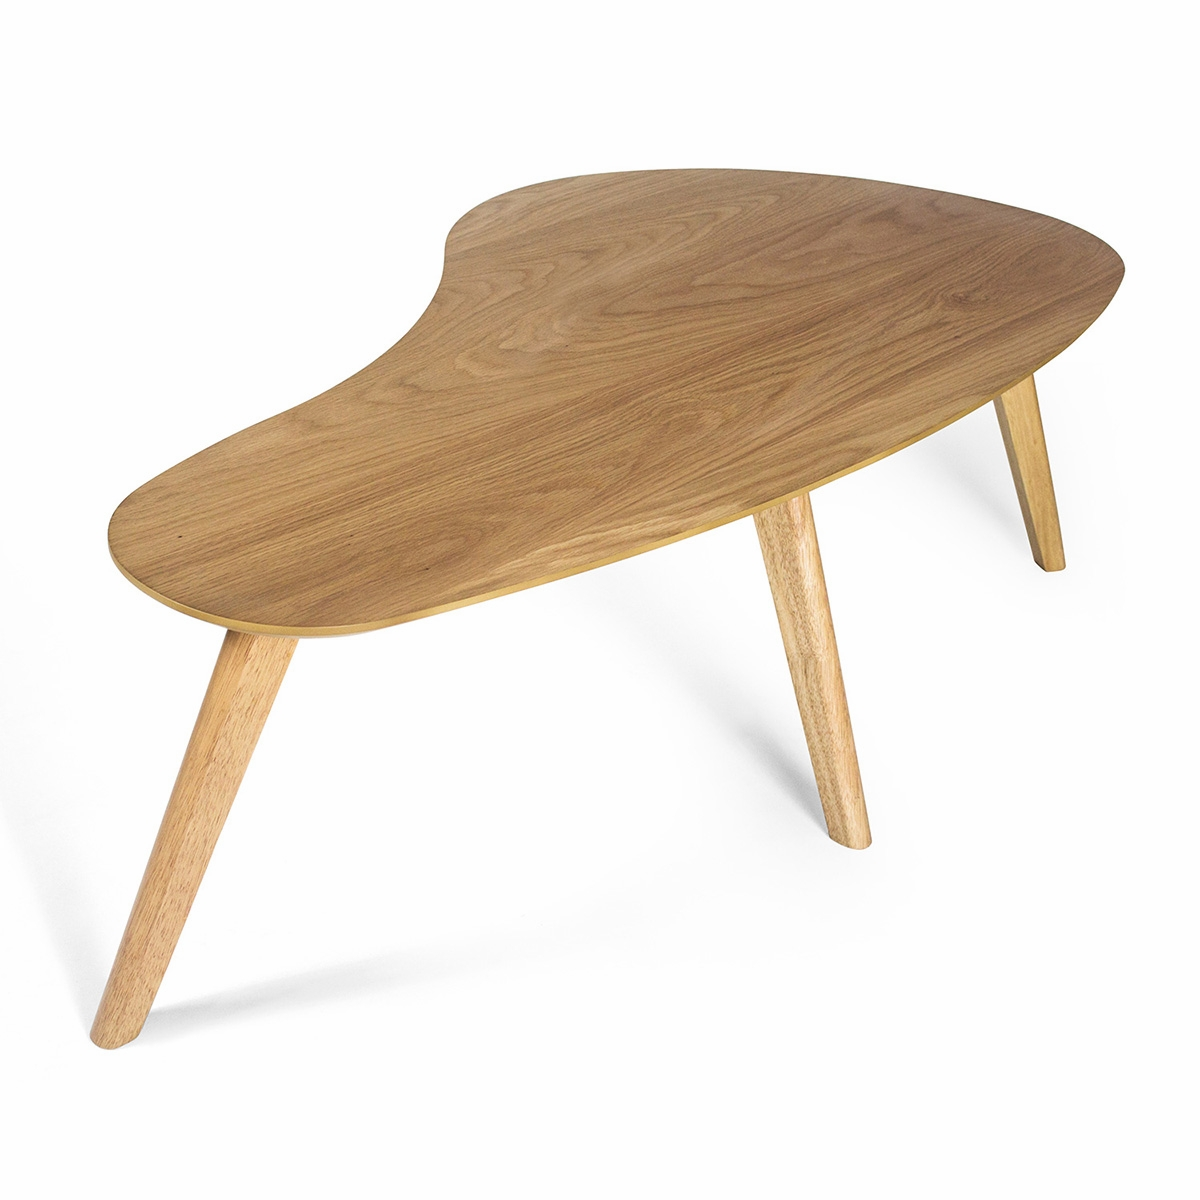 High Quality Kidney Shaped Coffee Table (White Oak)